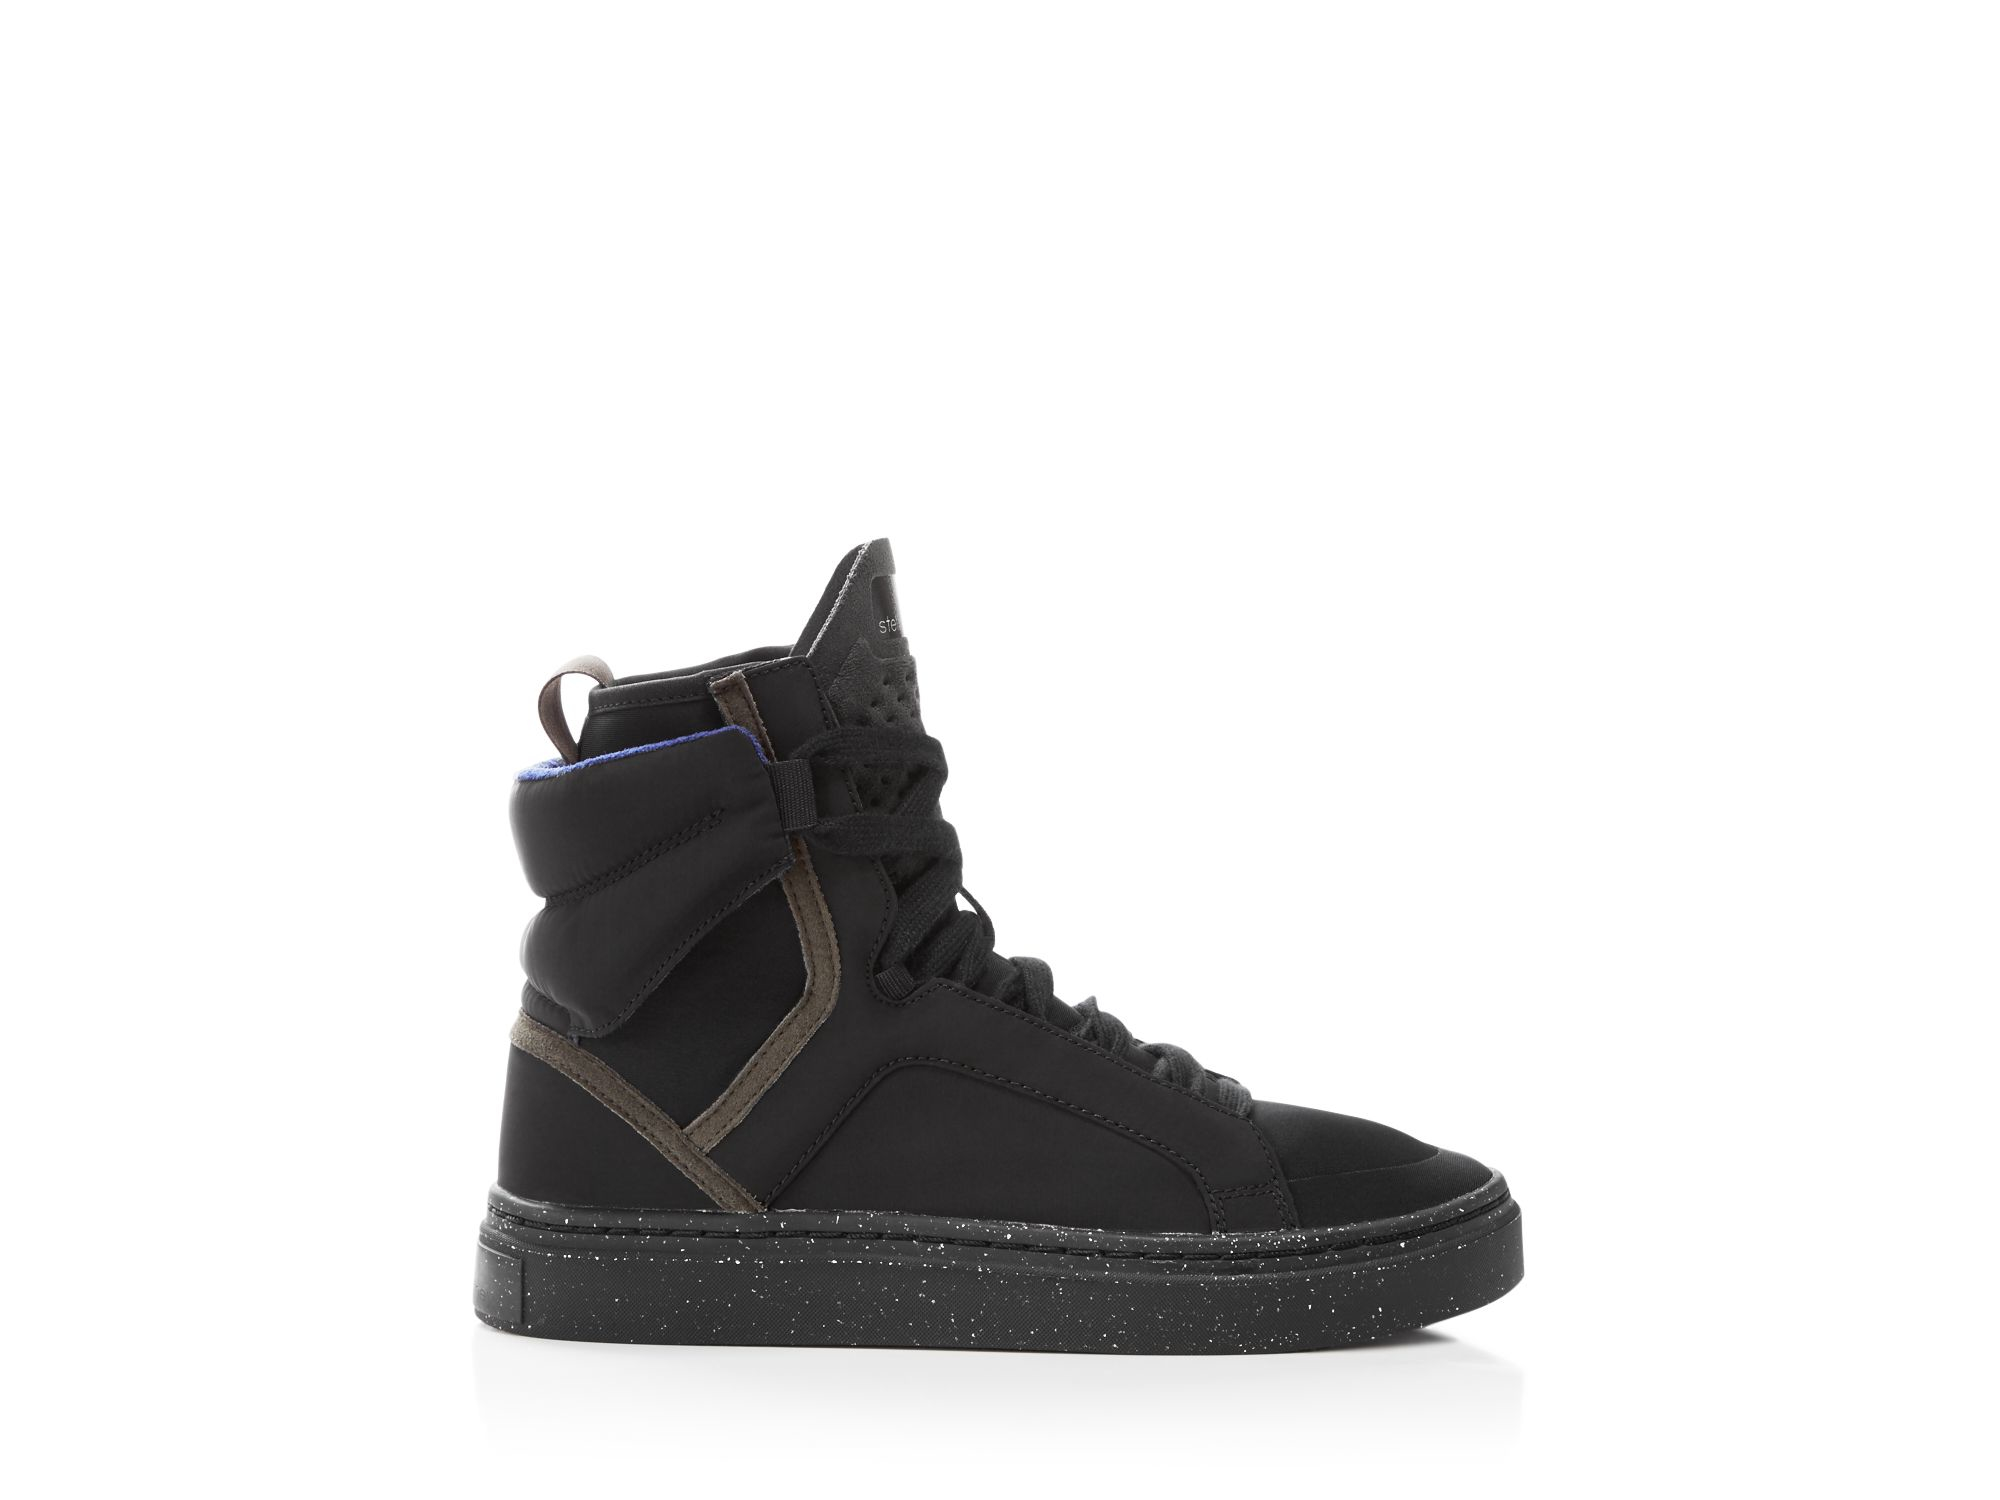 Adidas By Stella McCartney Gray Asimina High top Sneakers Lyst